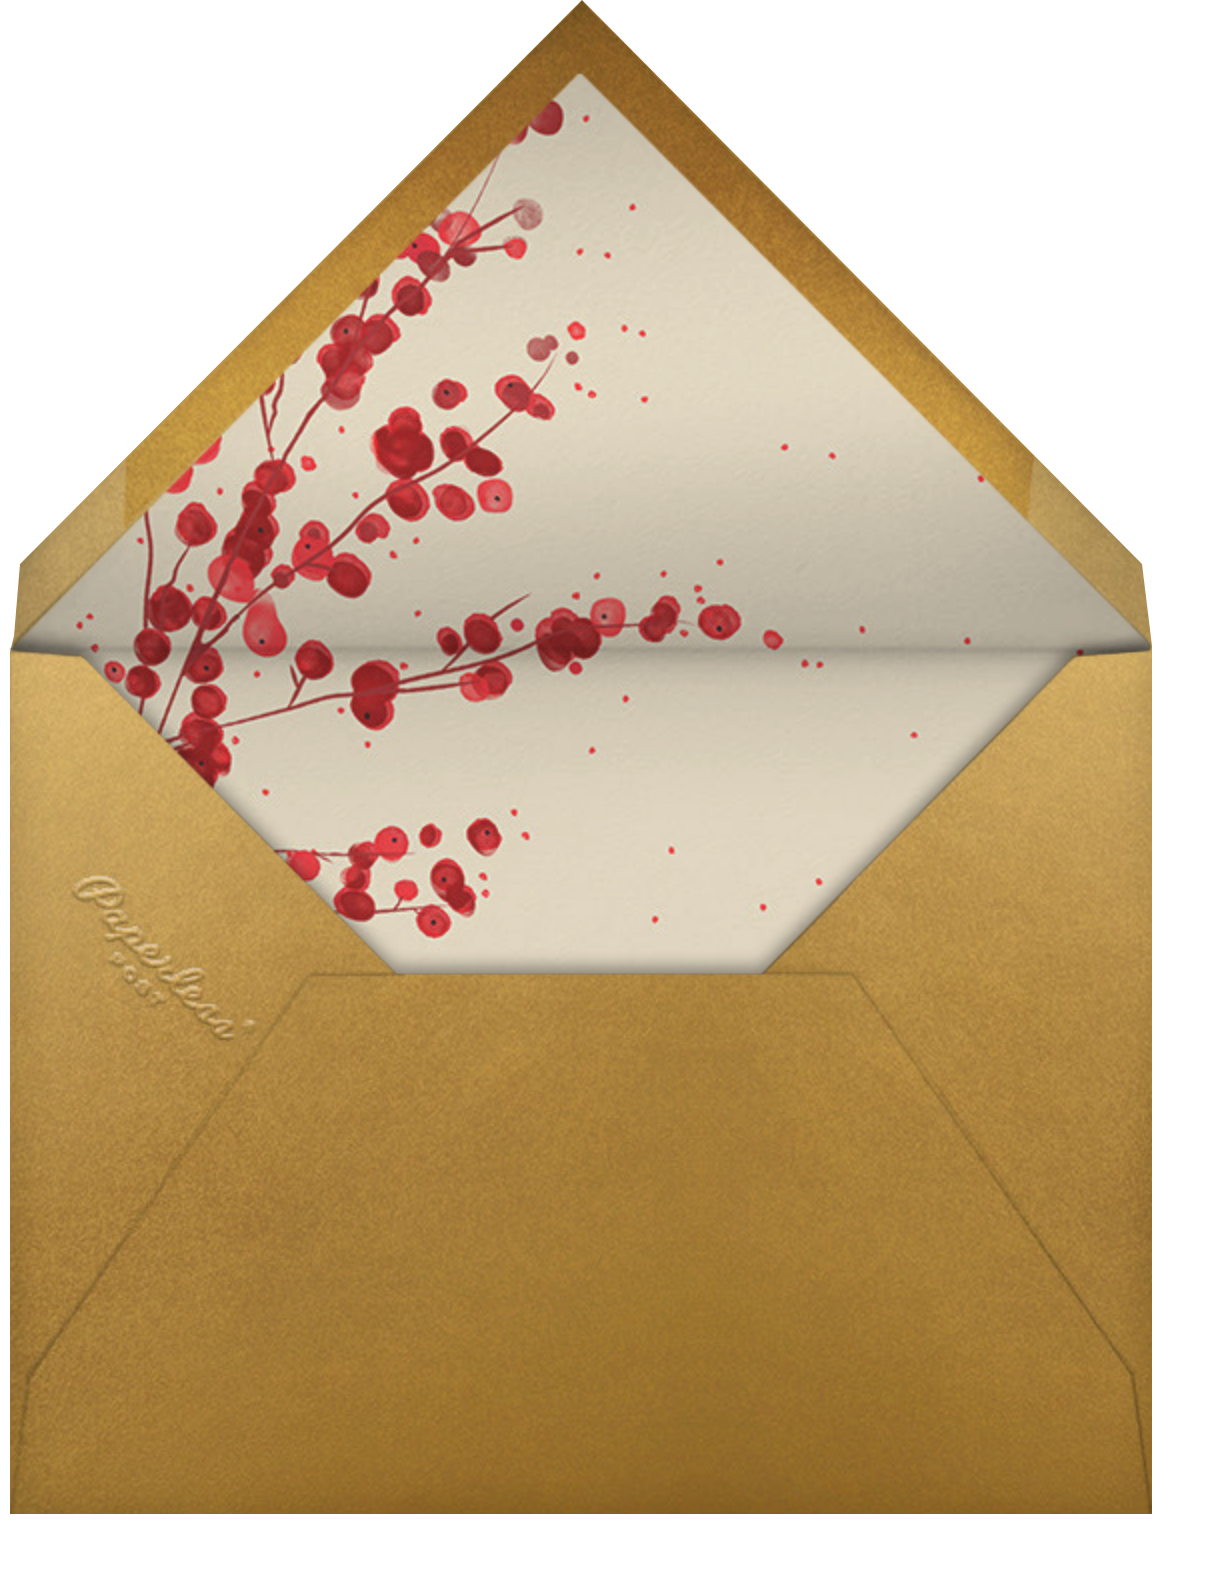 In Season - Paperless Post - Corporate invitations - envelope back